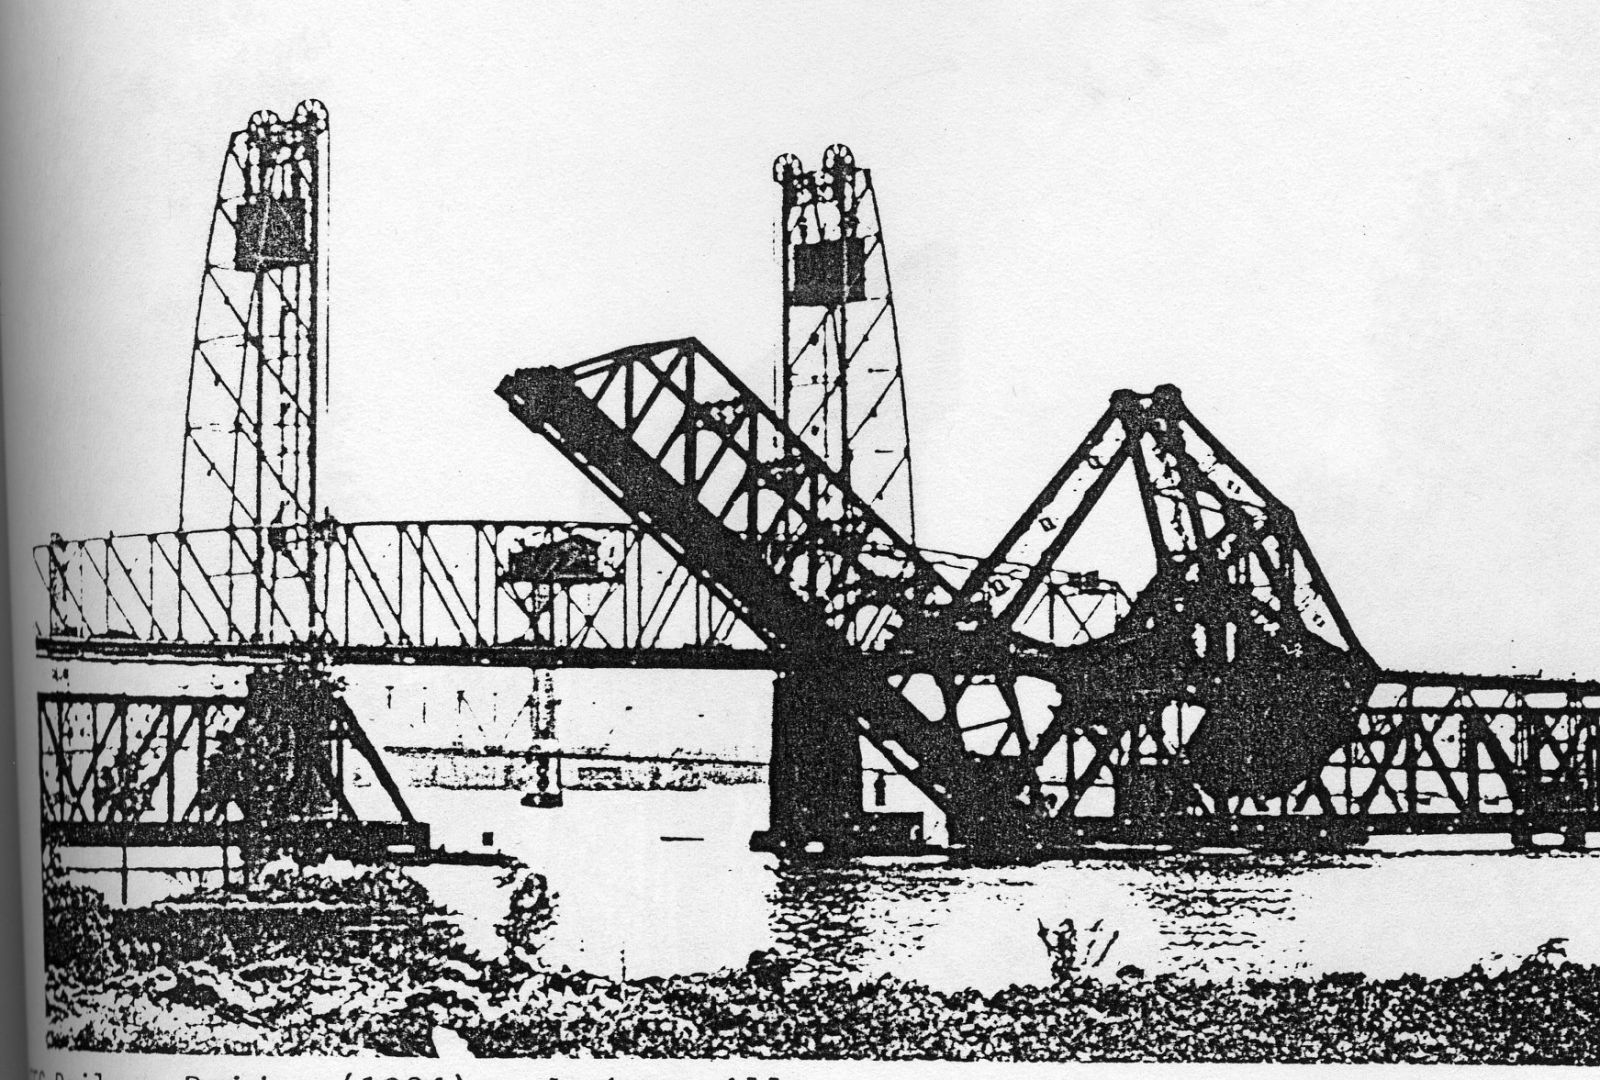 Industrial History Fec 1925 Bridge Over St Johns River In Truss Diagram Information About Warren Bridges Photo Cleveland State University Library Photograph Collection From Hunter